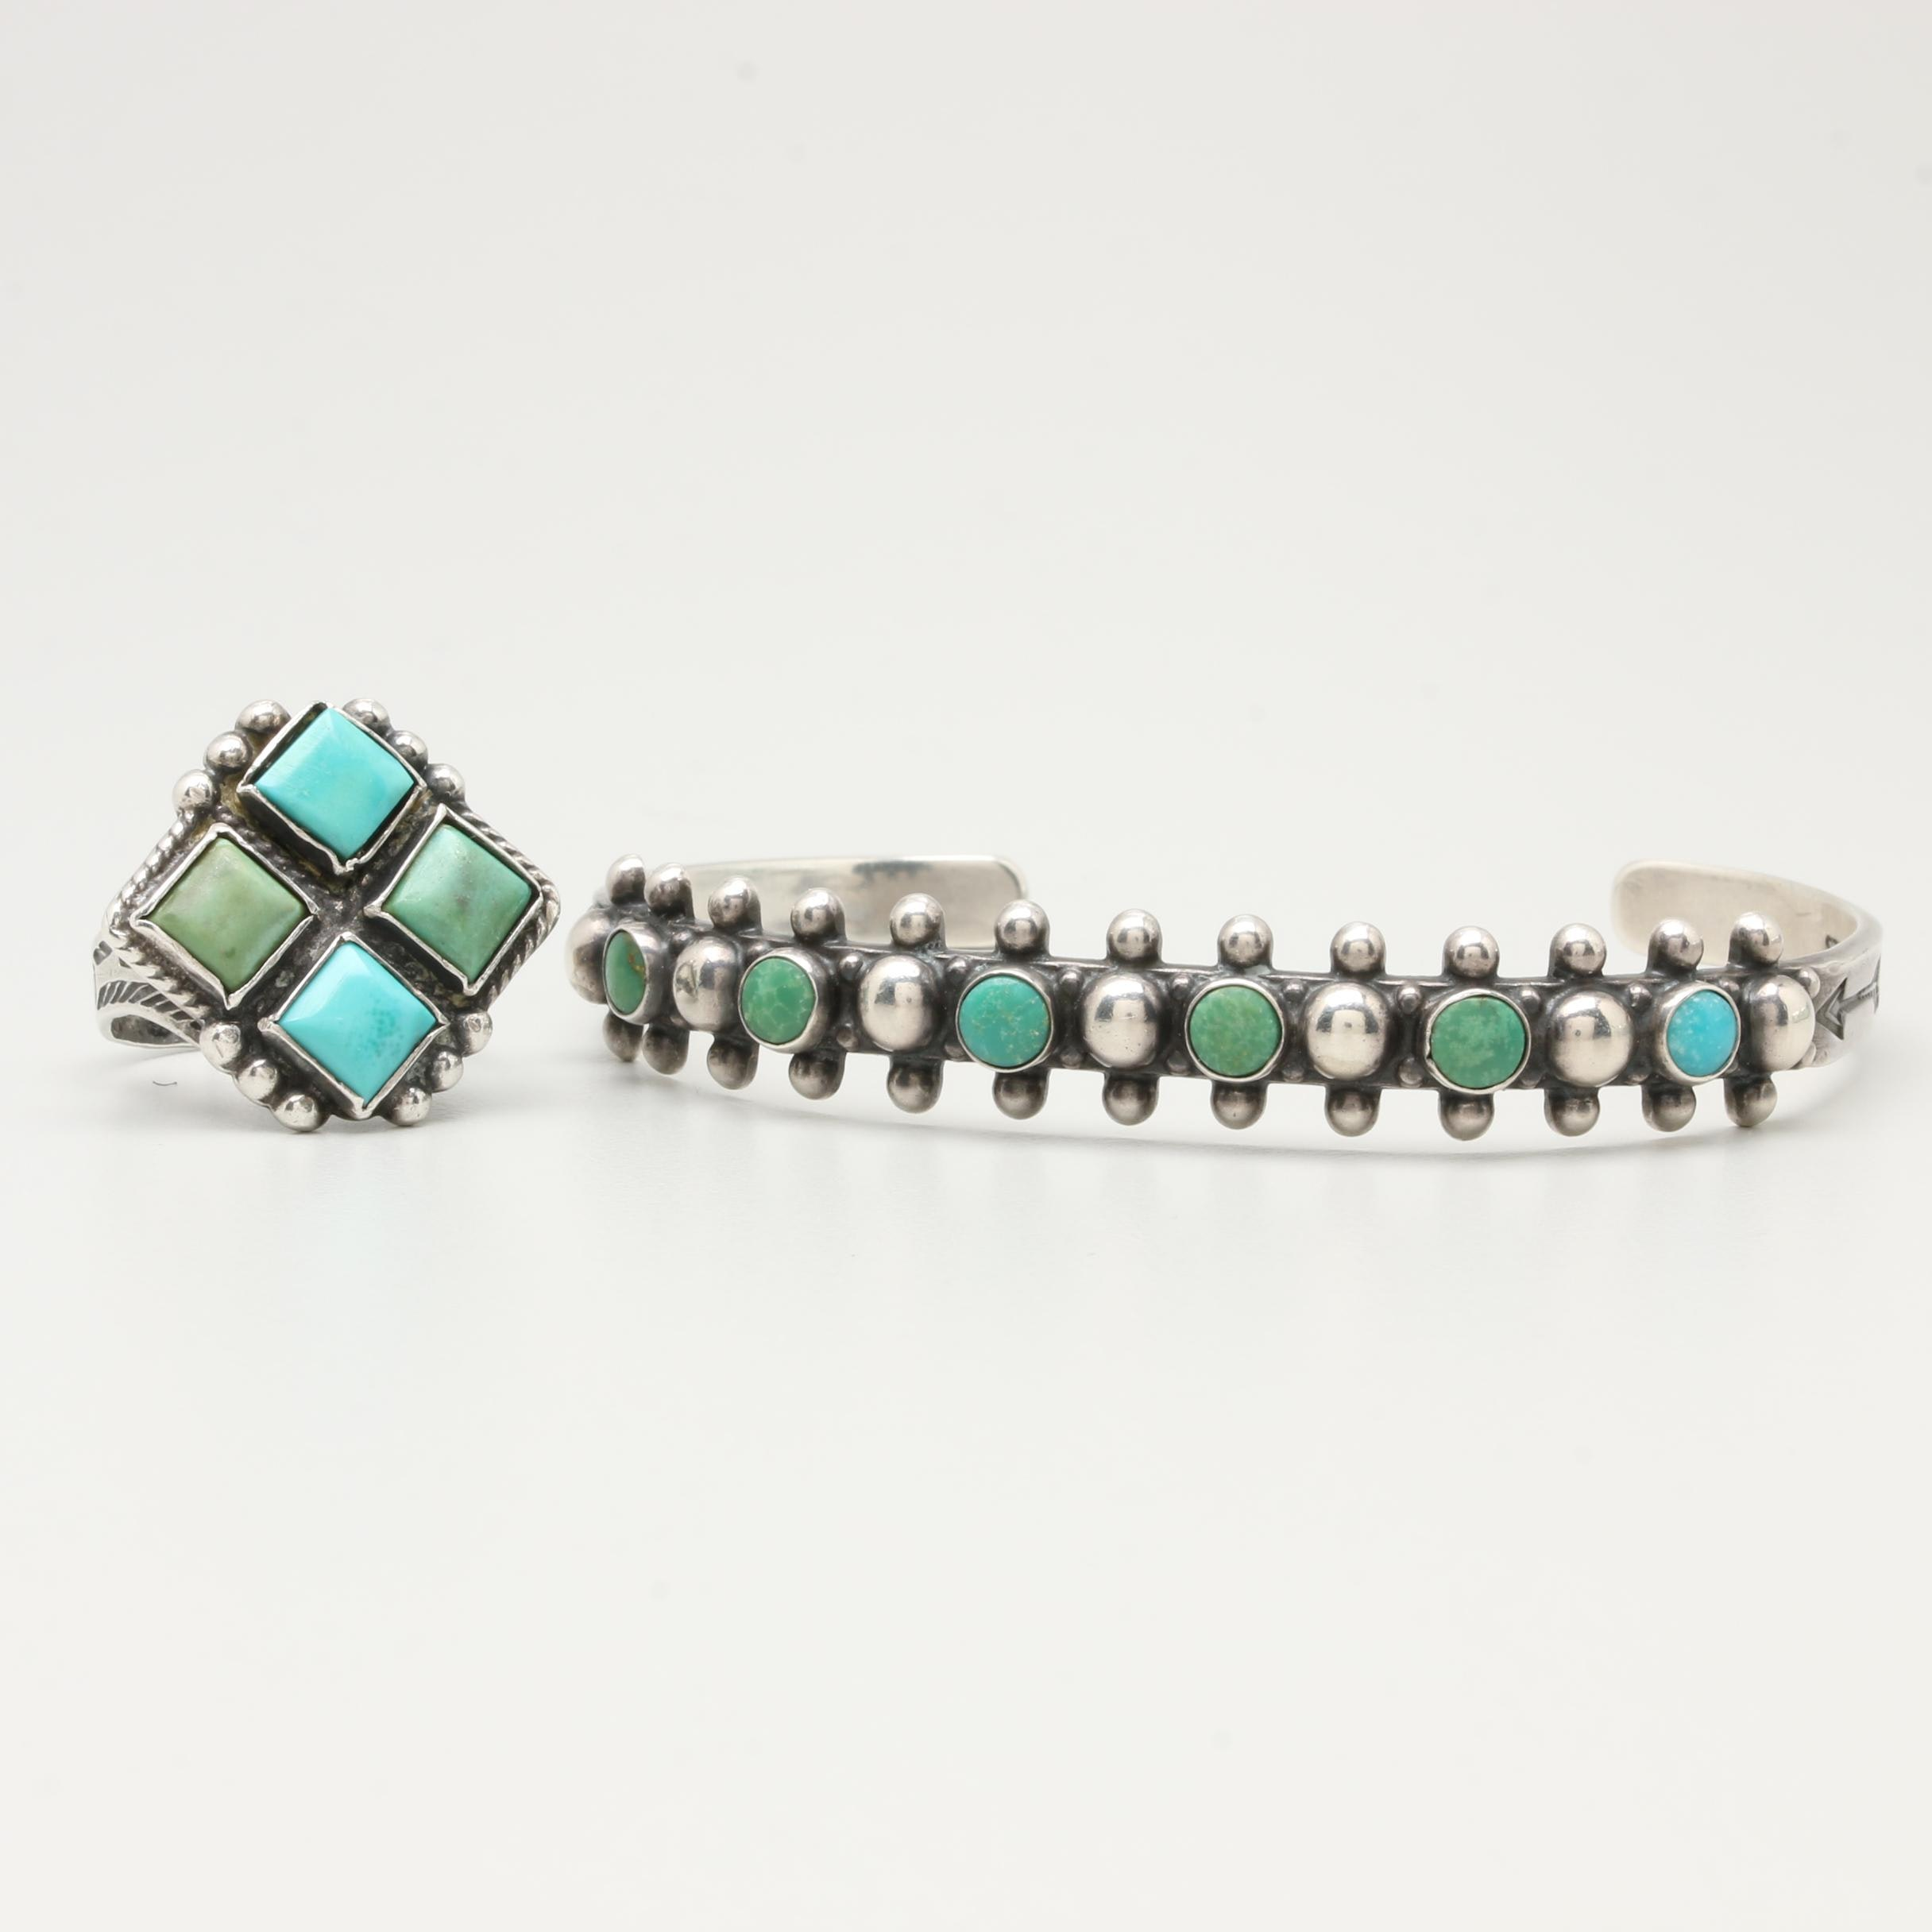 Southwestern Style 900 and Sterling Silver Turquoise Jewelry Selection